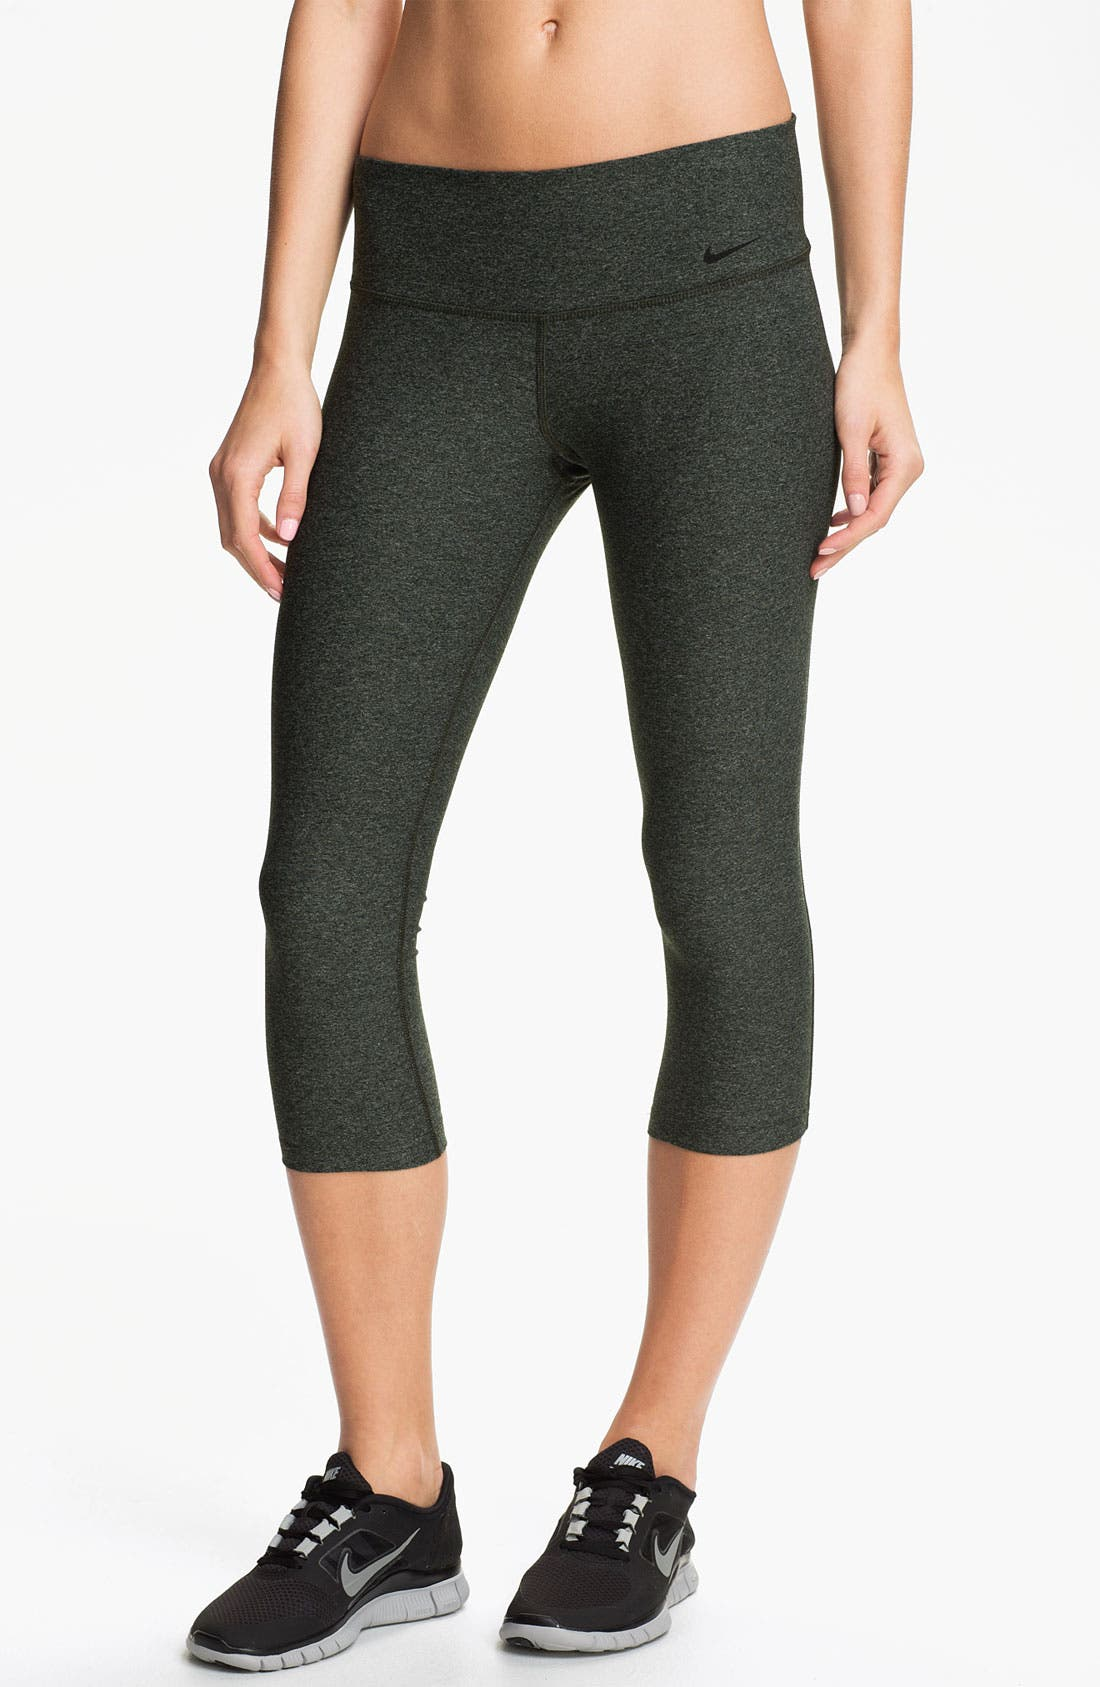 Alternate Image 1 Selected - Nike 'Legend - Tight Fit' Capris